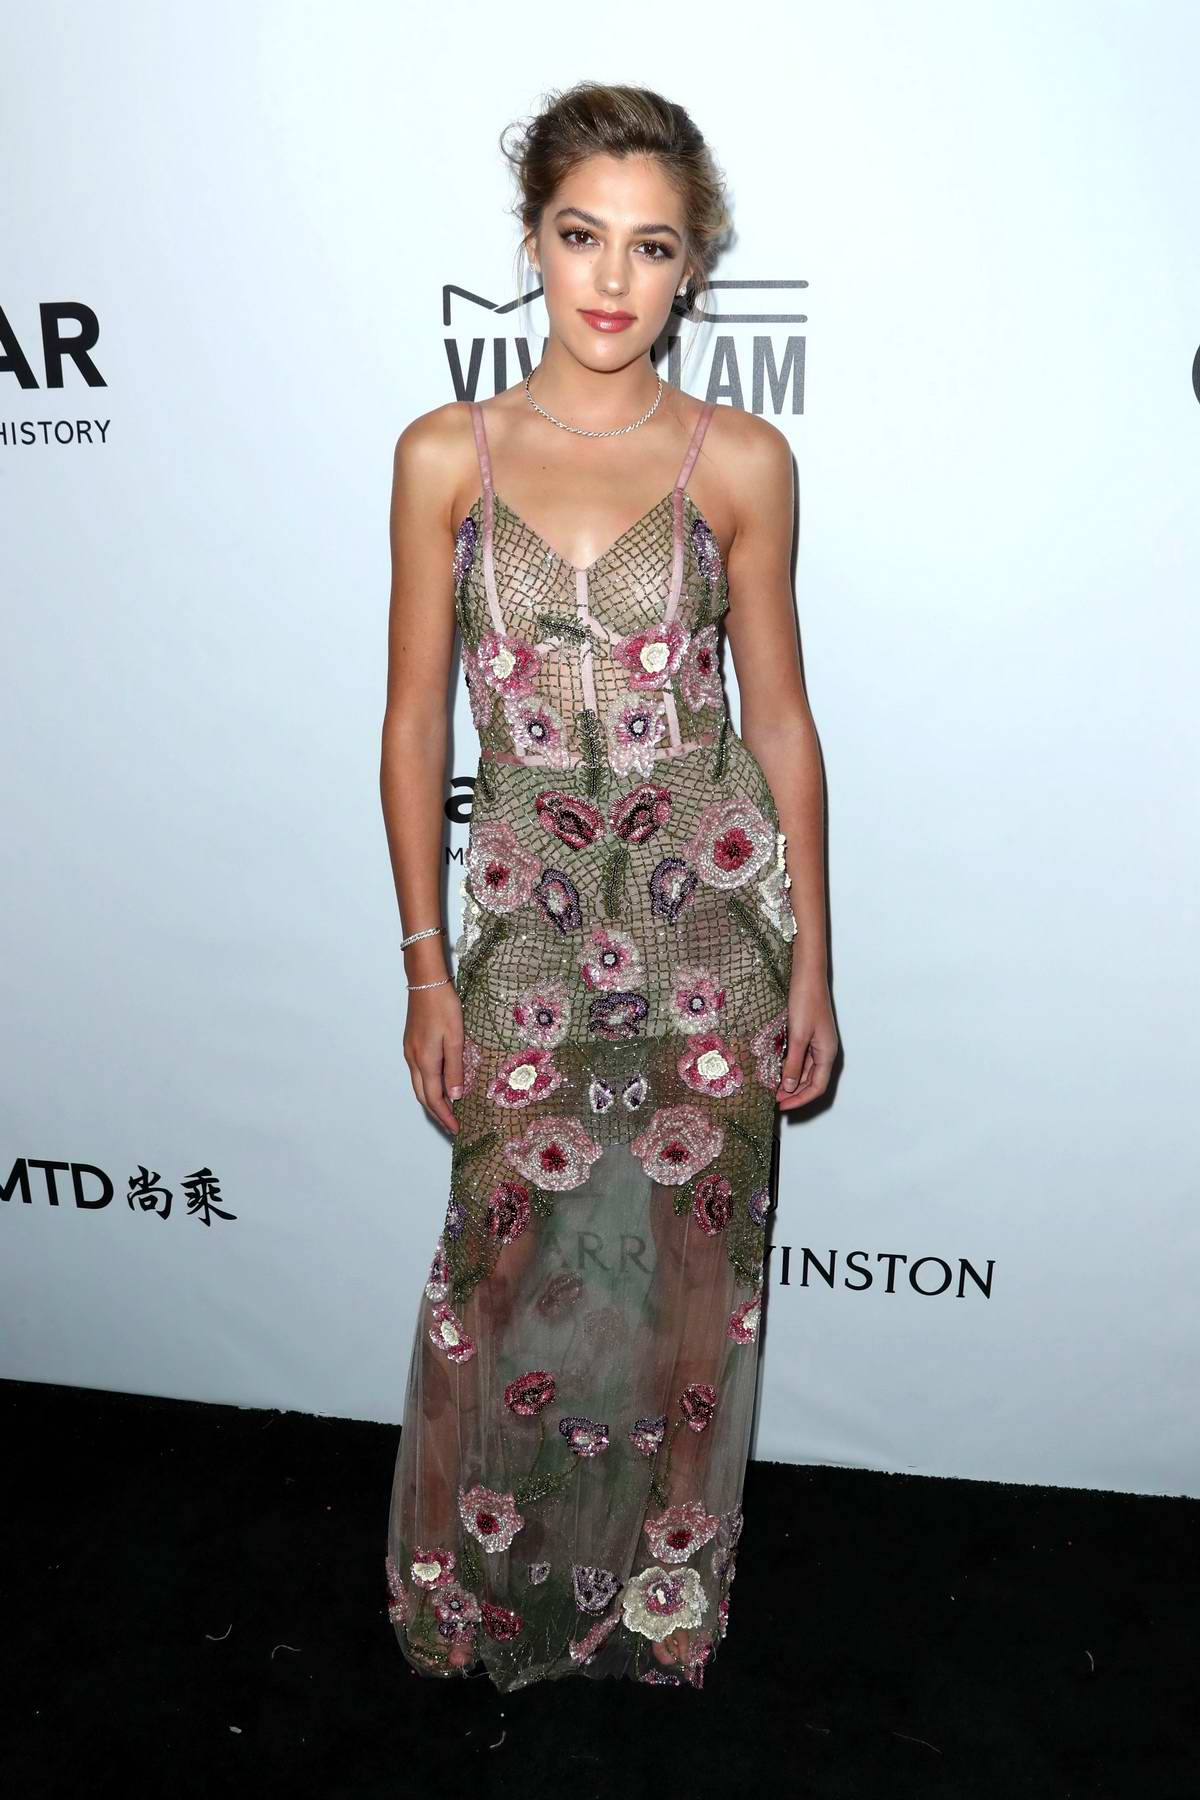 Sistine Stallone at the amfAR Inspiration Gala in Los Angeles